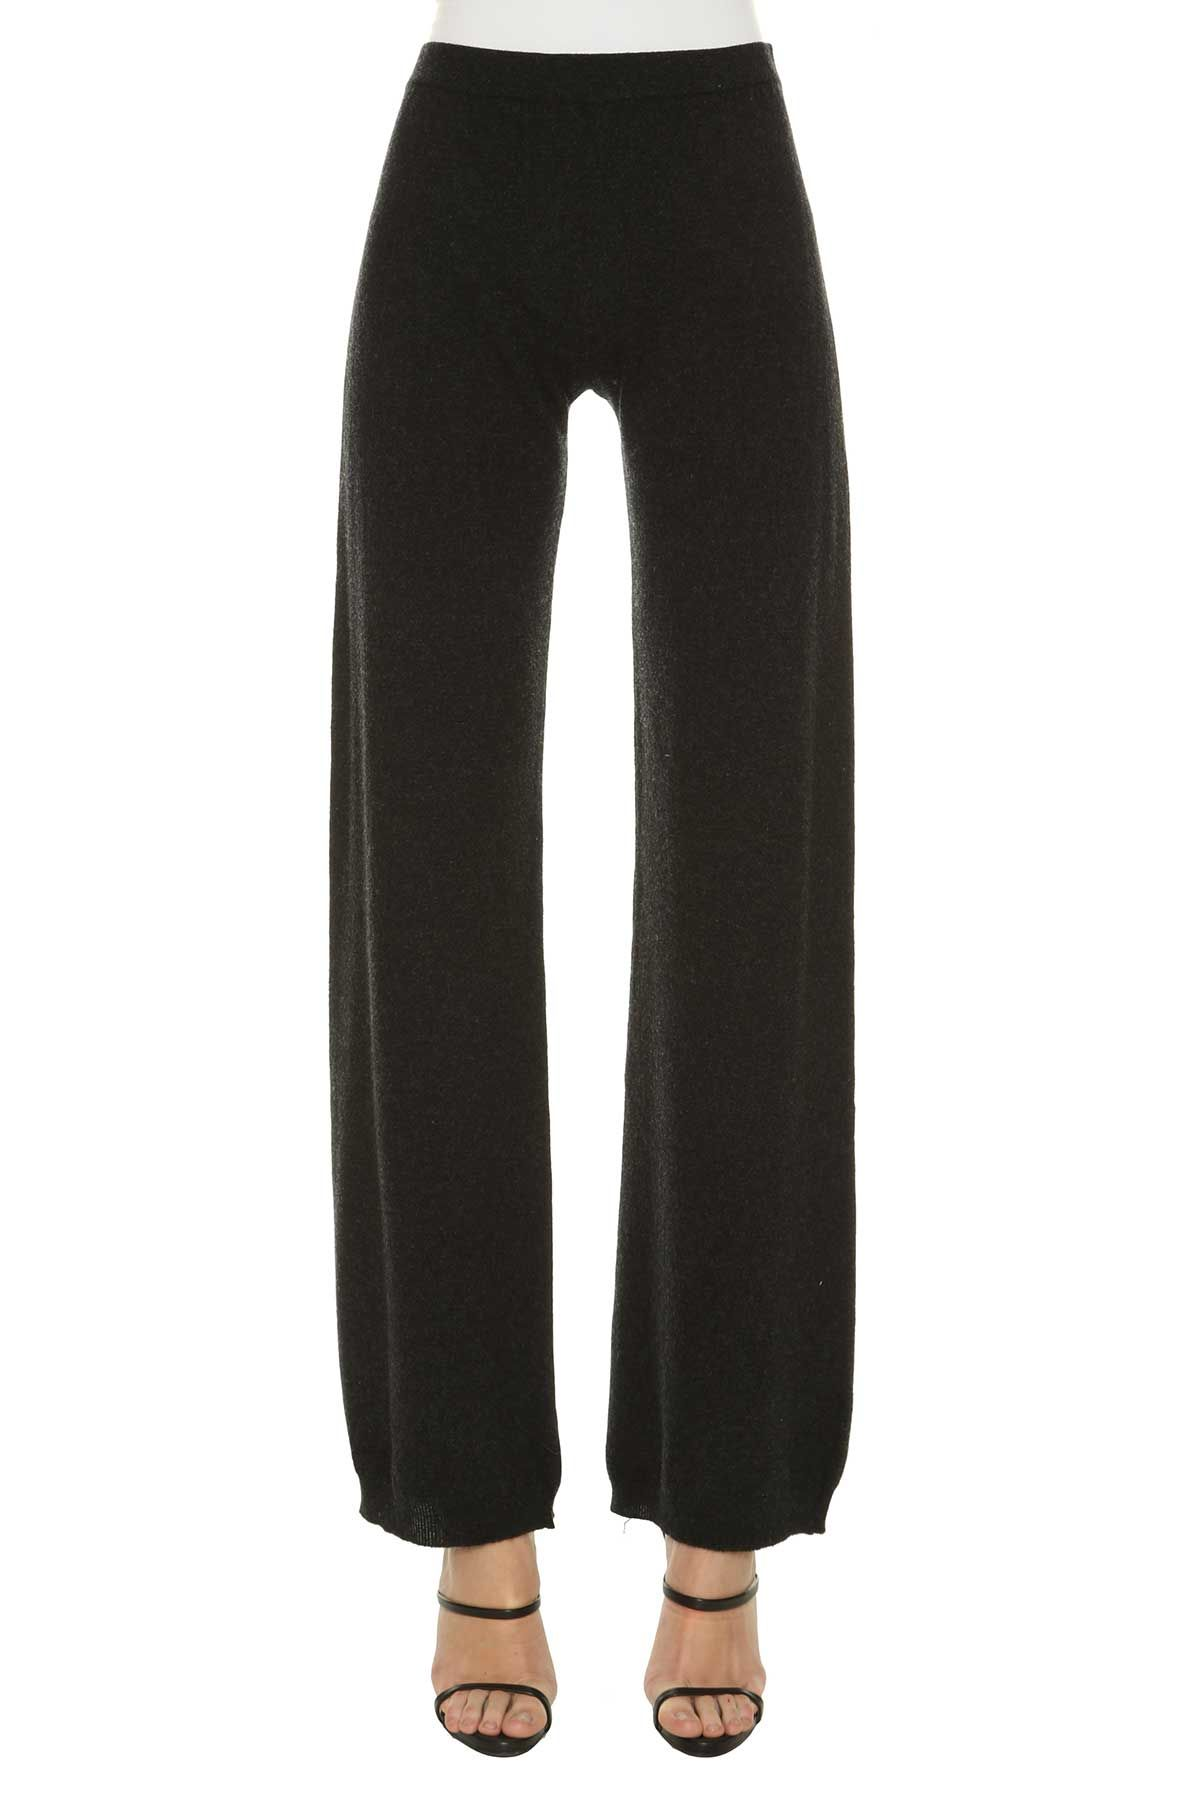 Max Mara Knitted novara Pants